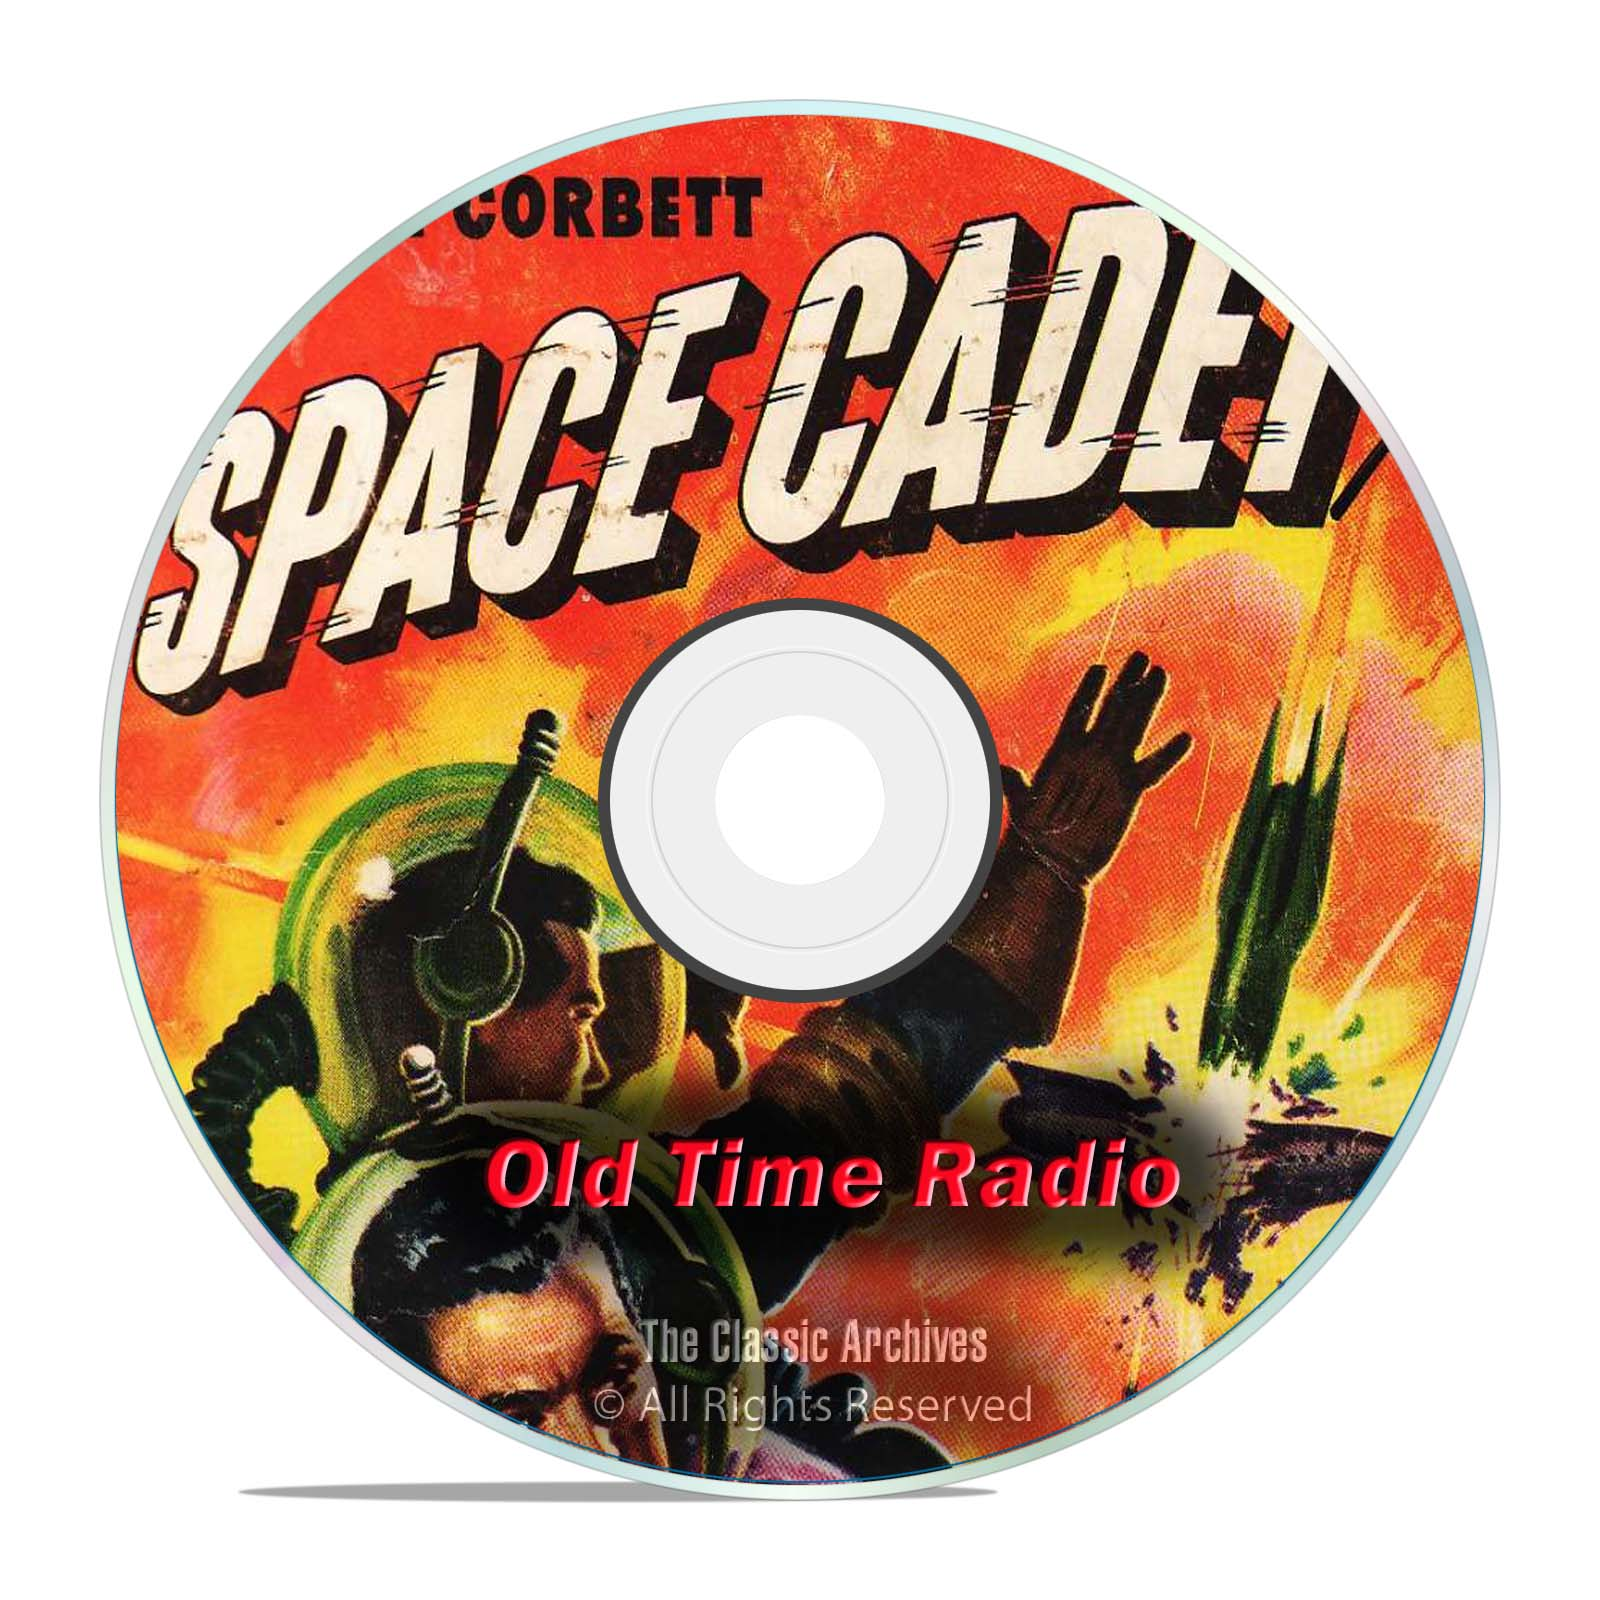 Tom Corbett, Space Cadet, 990 SciFi Old Time Radio Shows, OTR, DVD